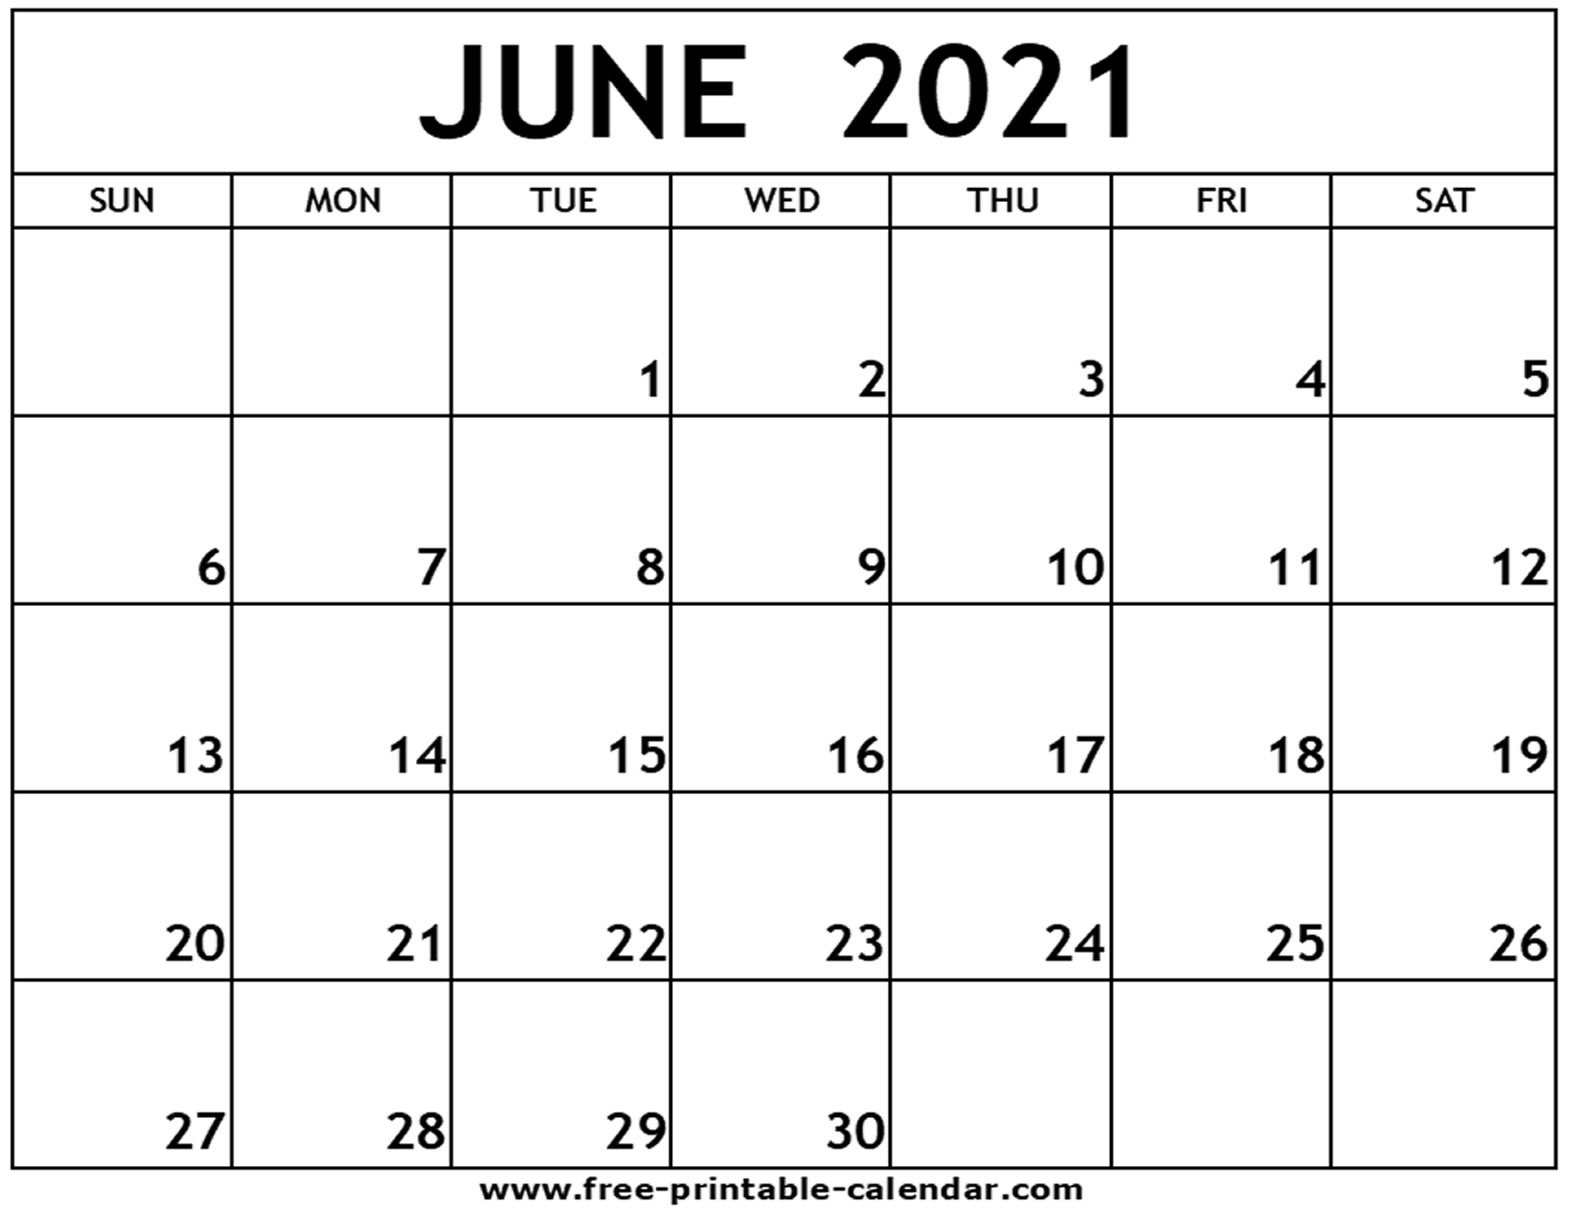 Calendar July 2021 To June 2021 Printable | Free 2021 ...